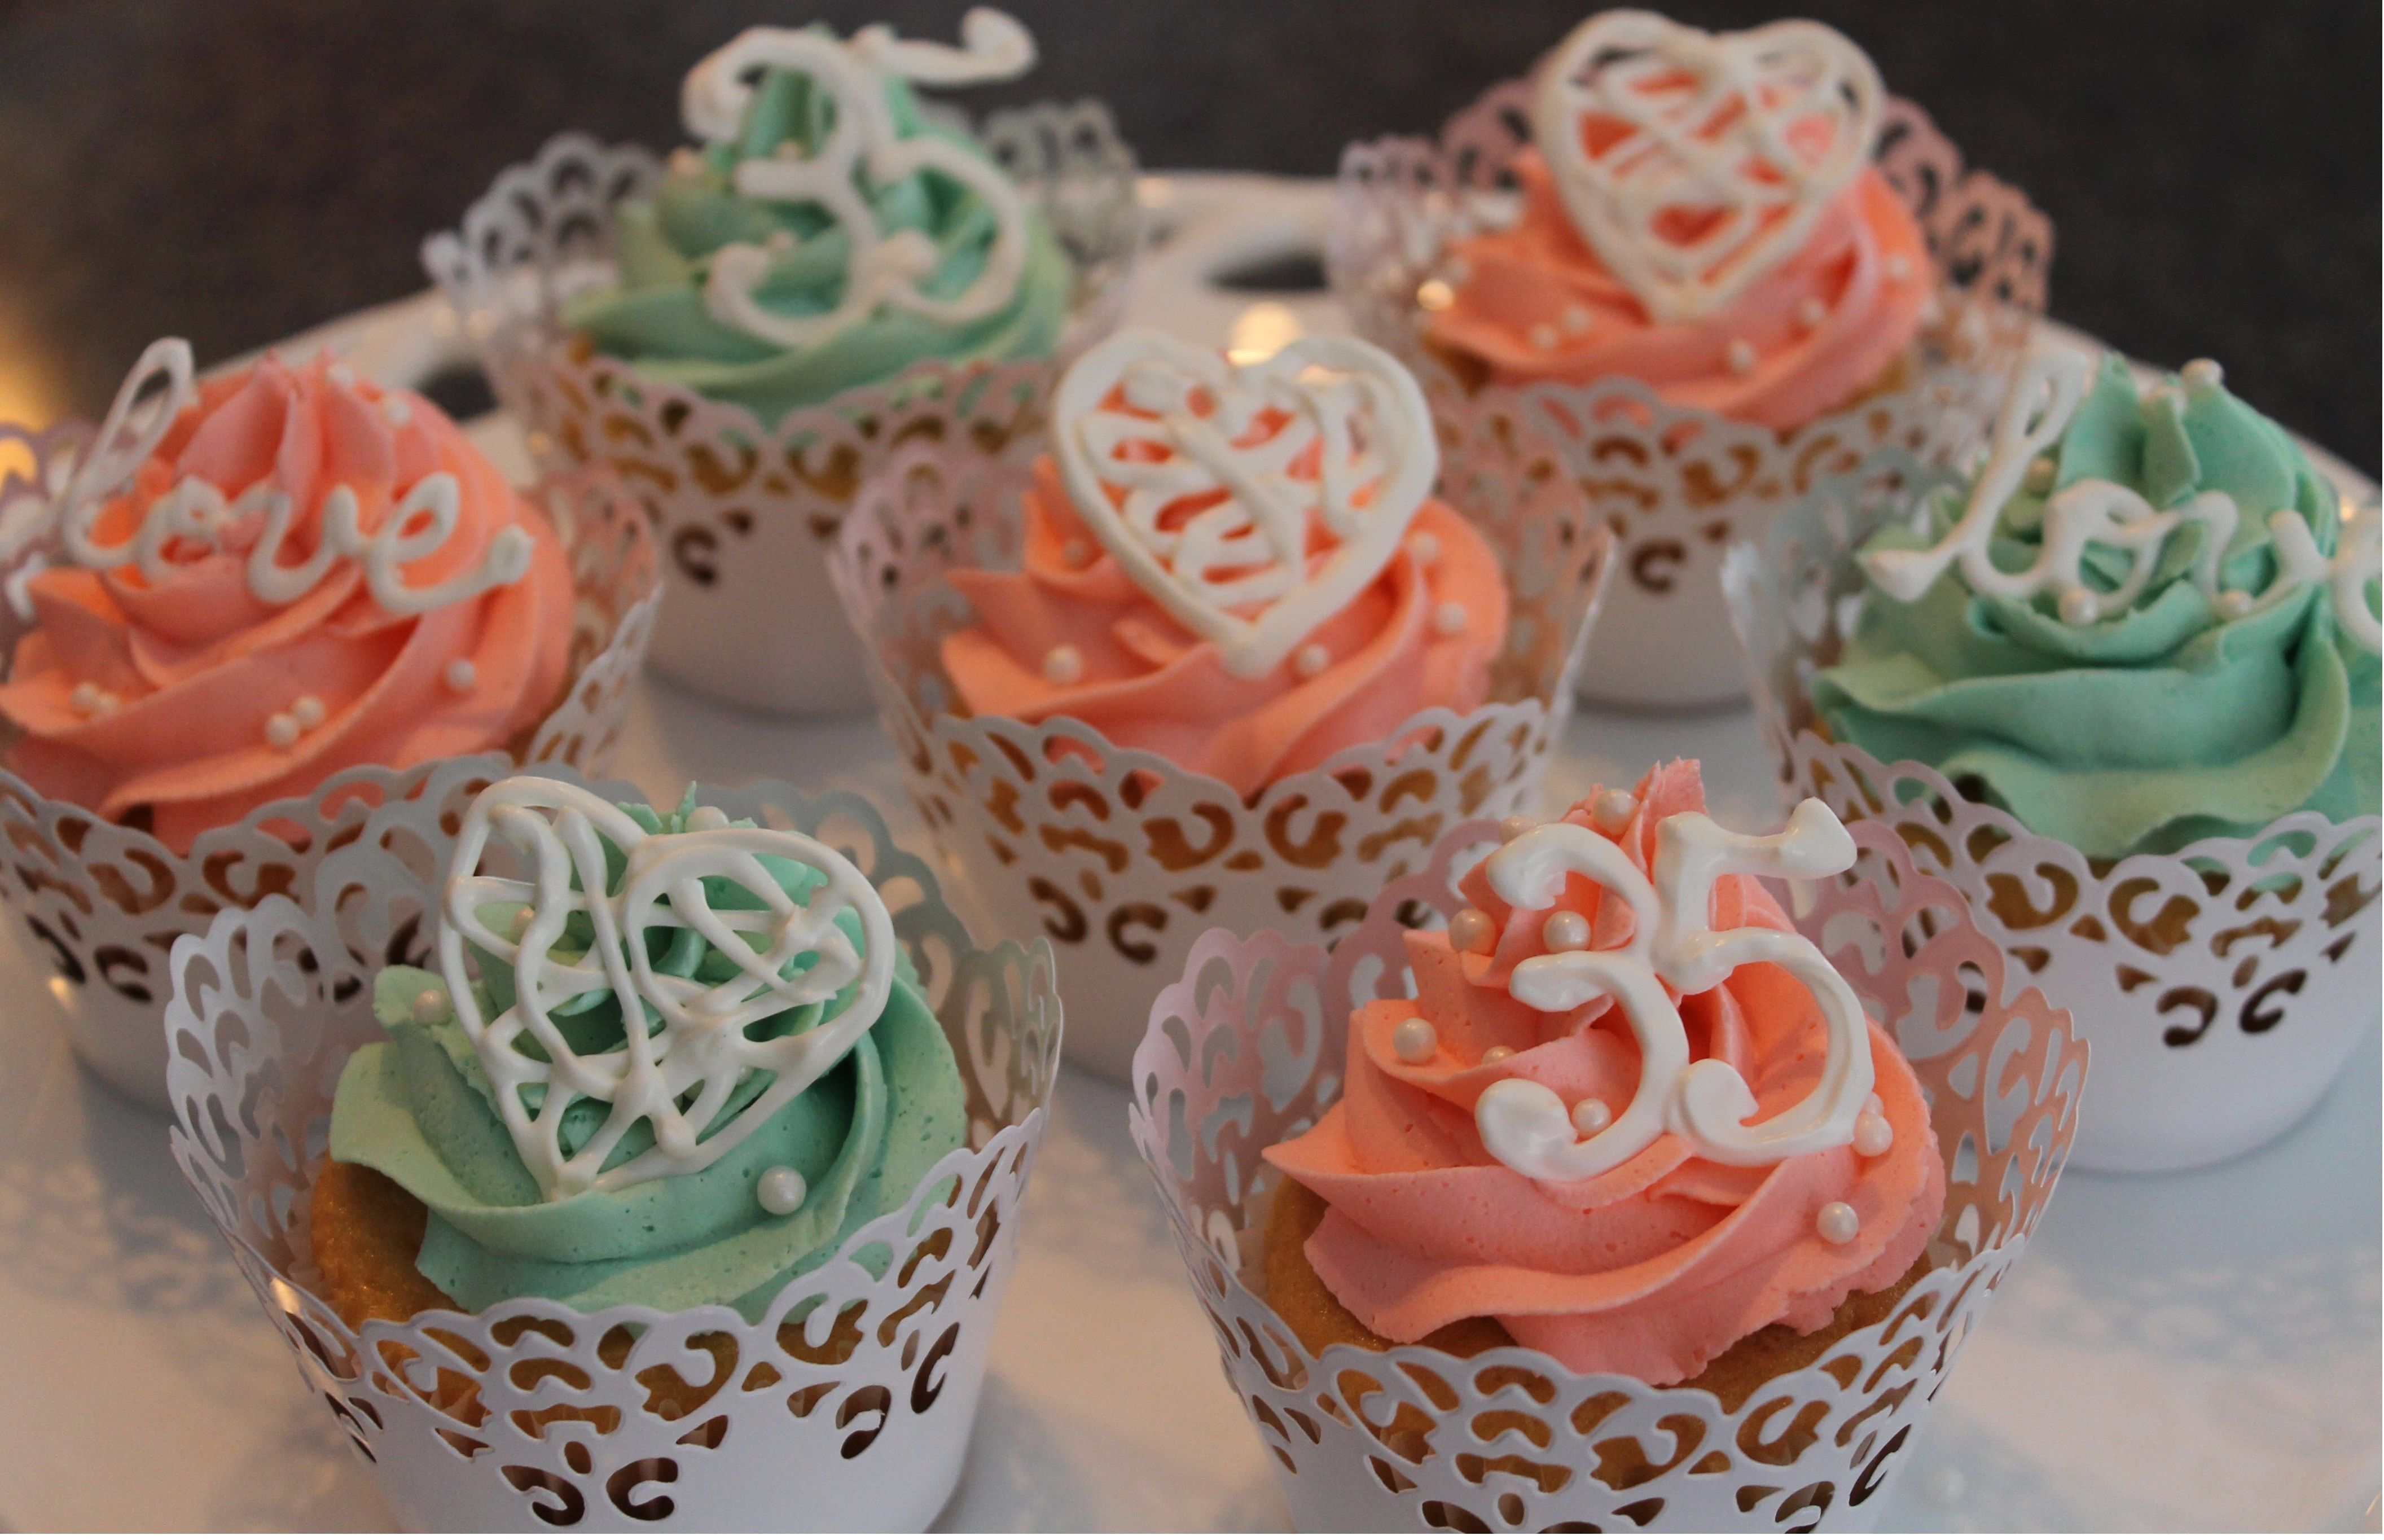 35th anniversary cupcakestraditional and modern coral